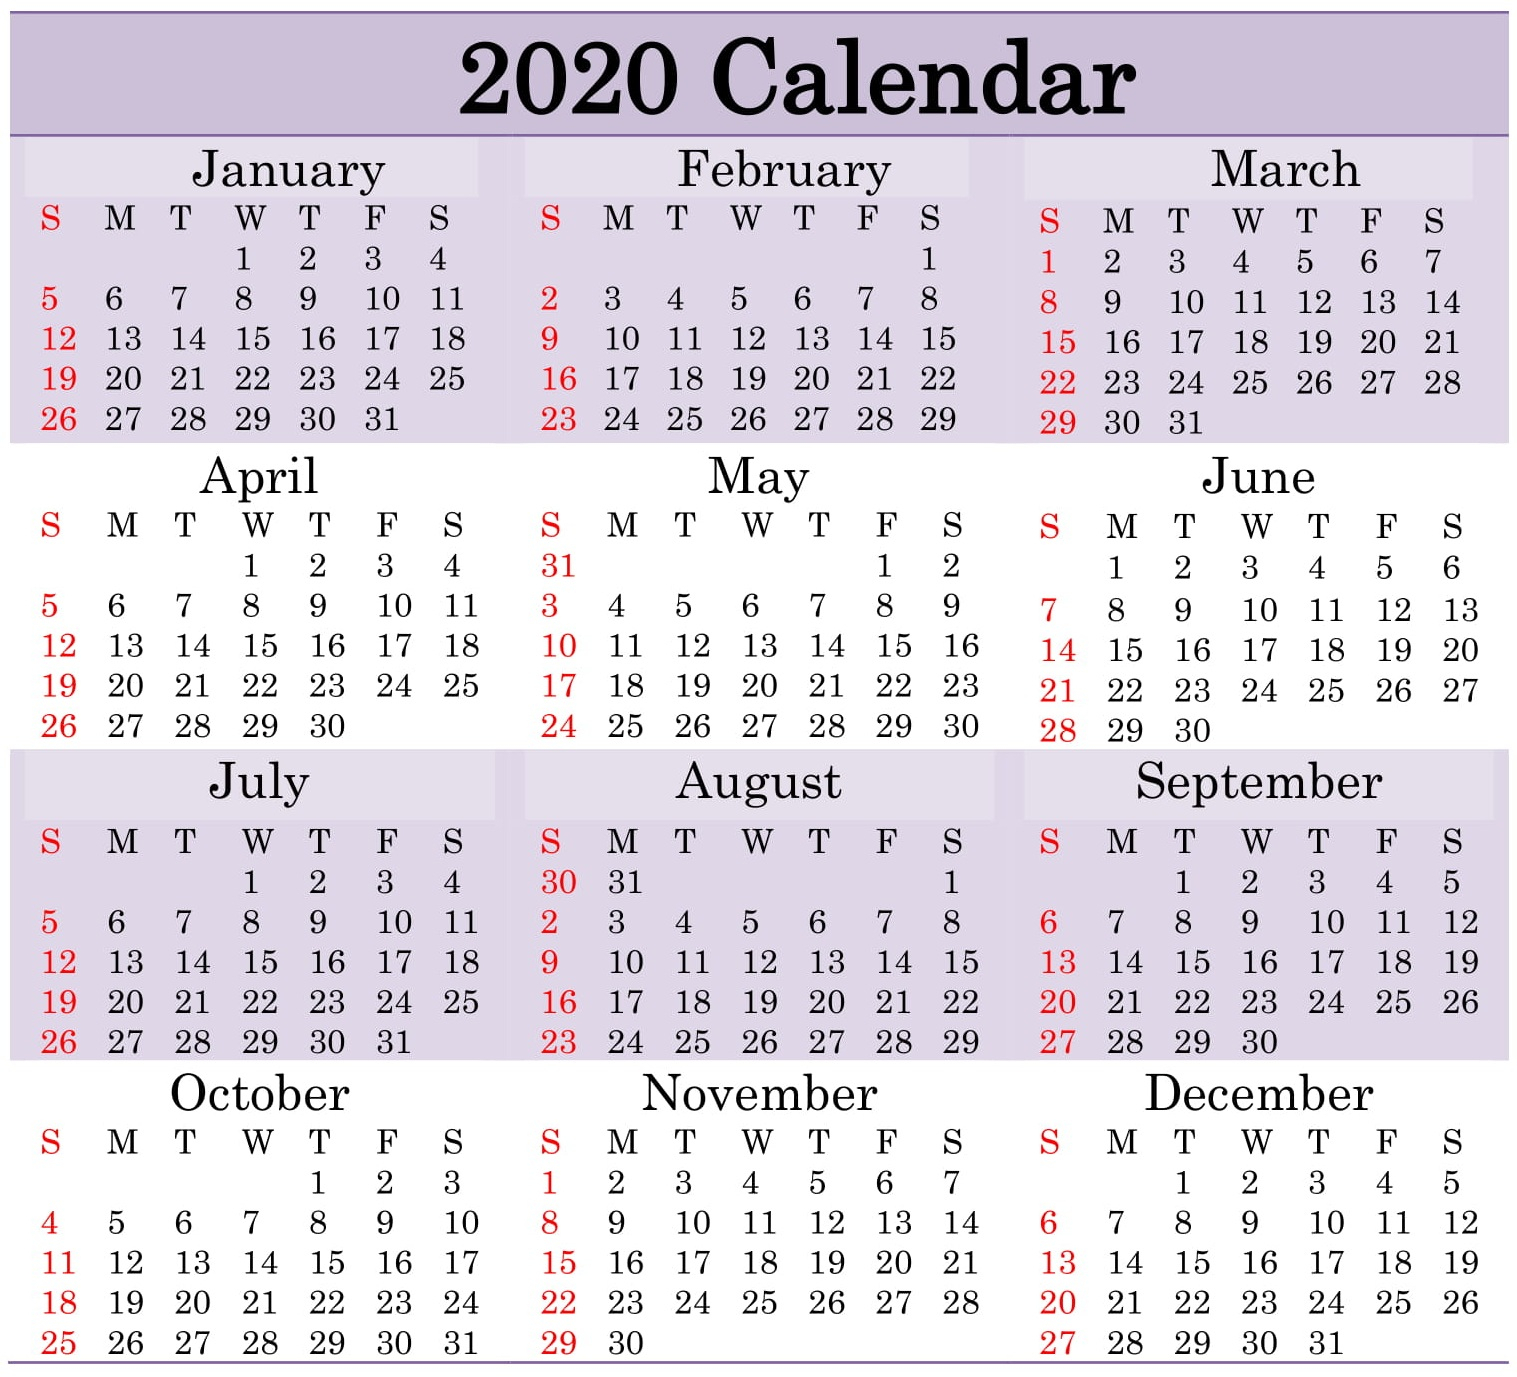 Printable 2020 Calendar Word Document  Latest Printable with regard to 2020 Julian Calendar